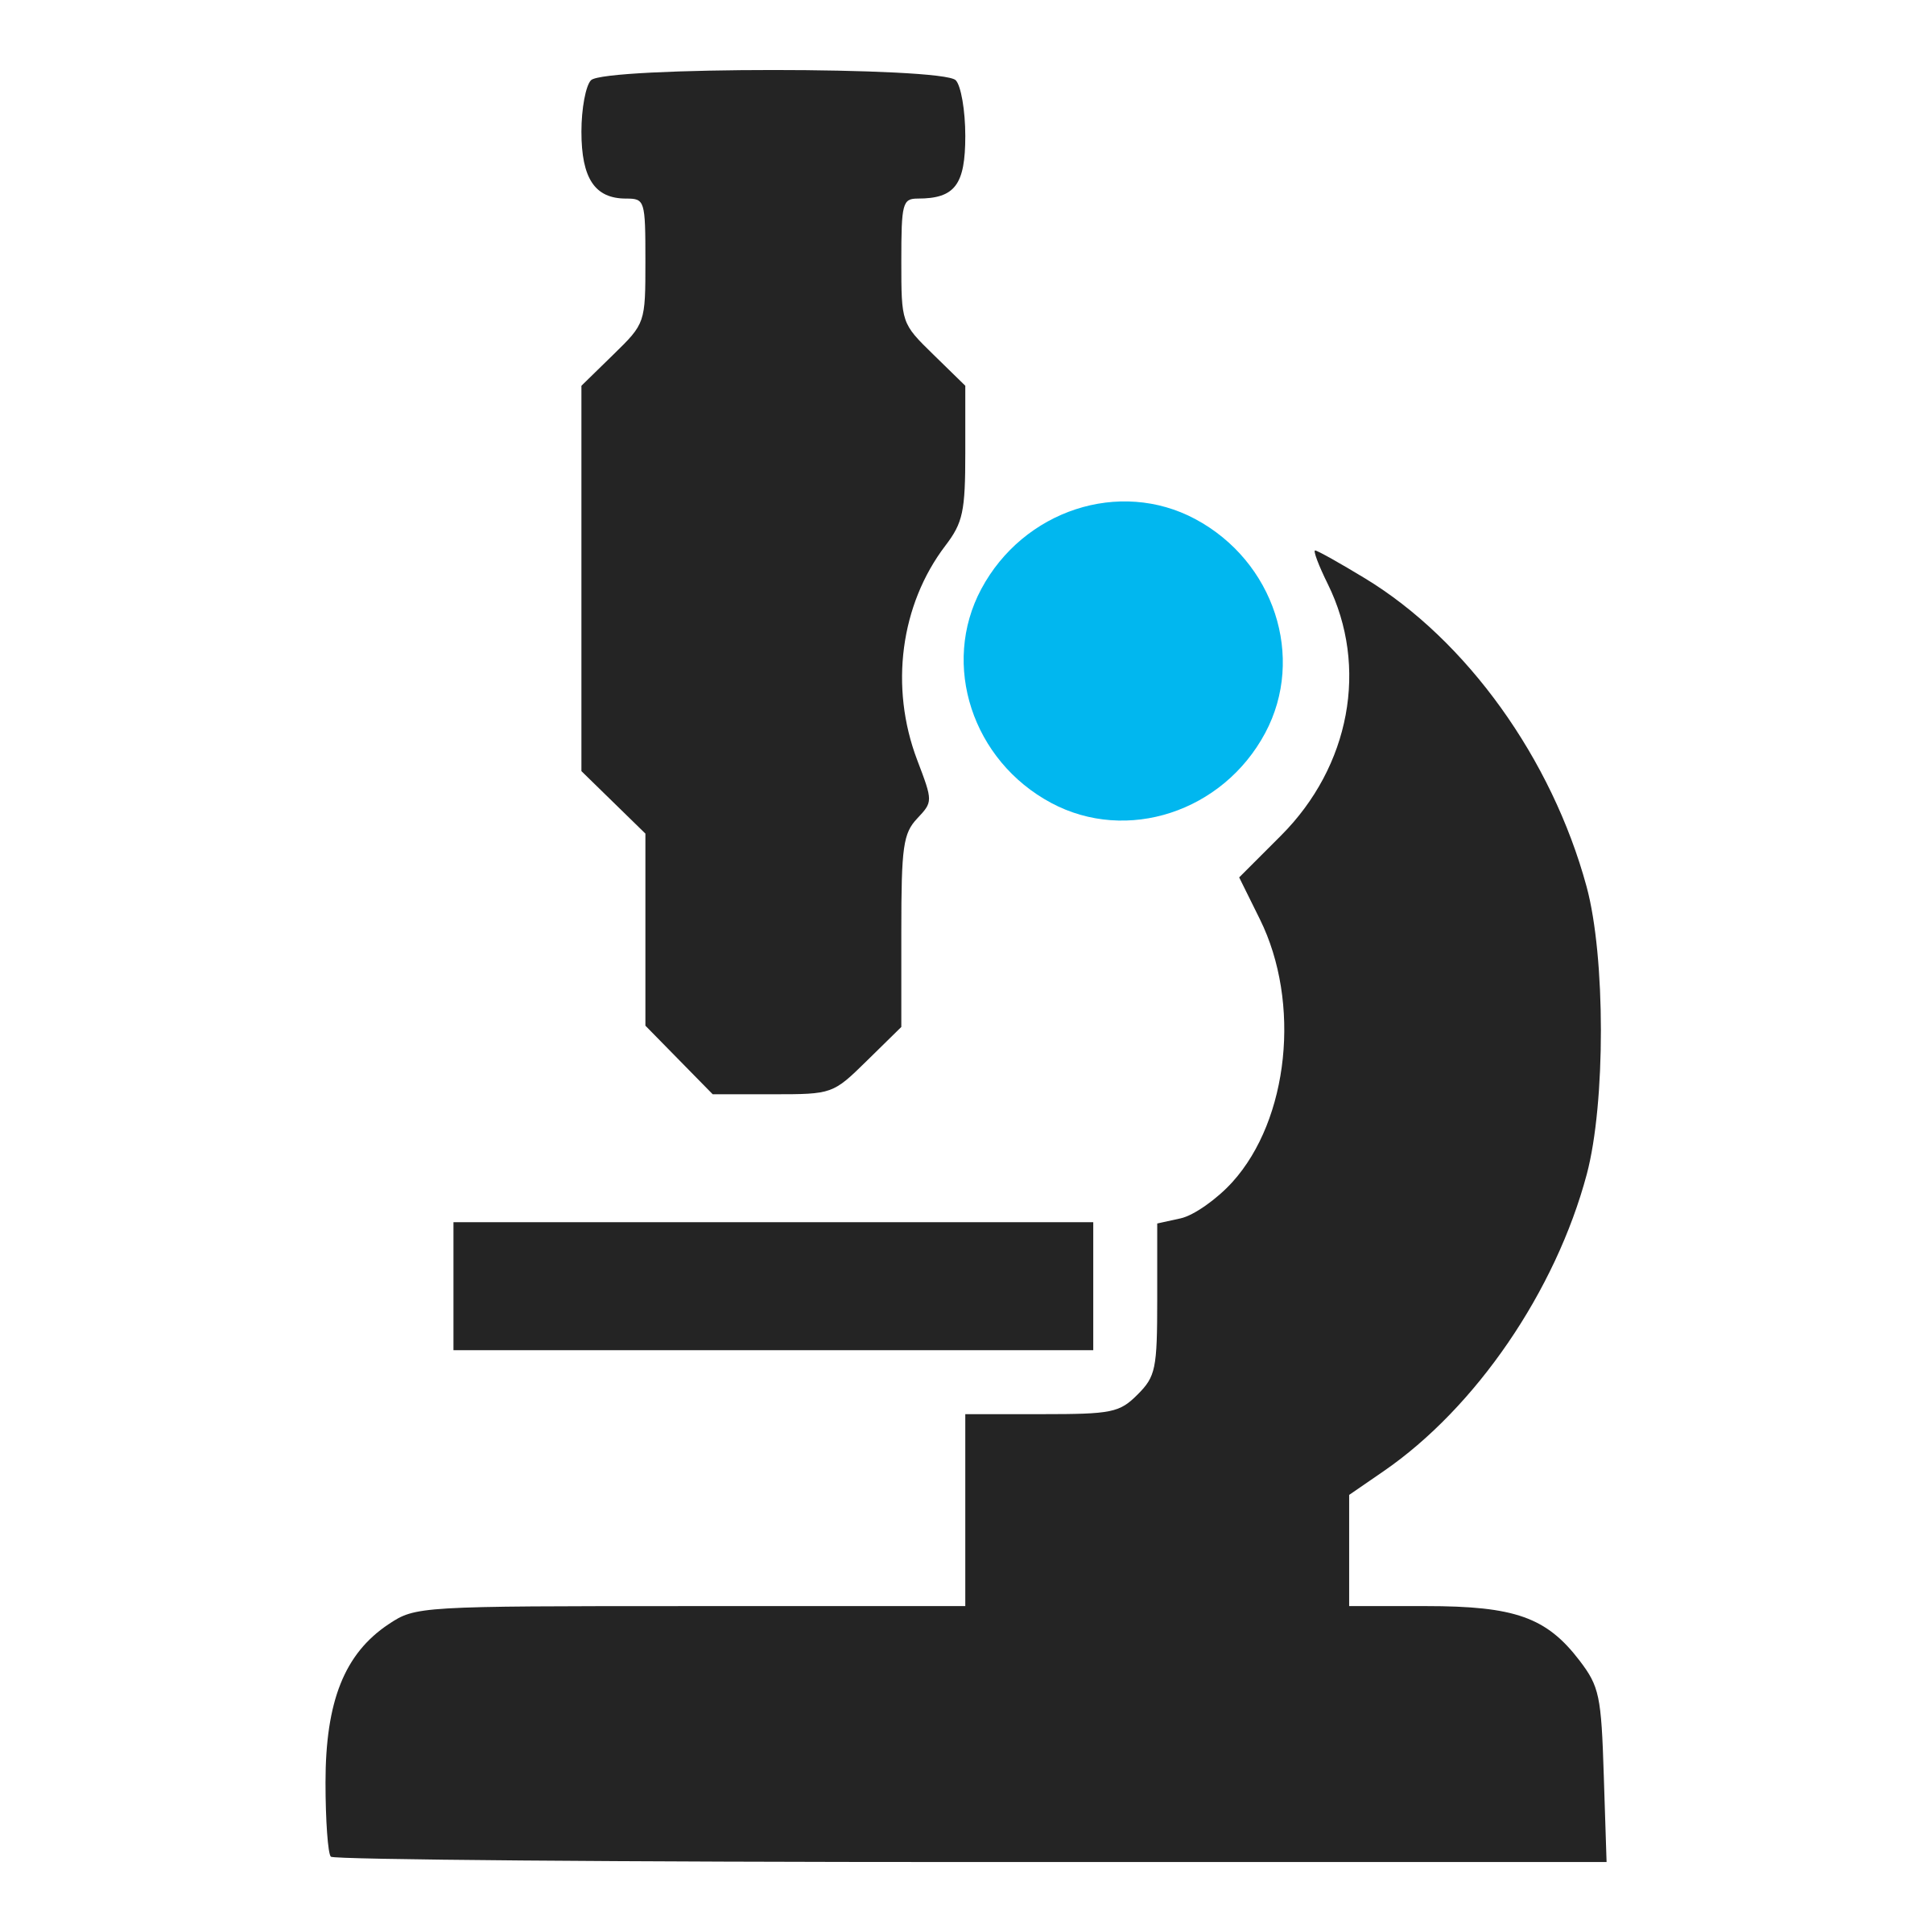 Microscope Icon by ben